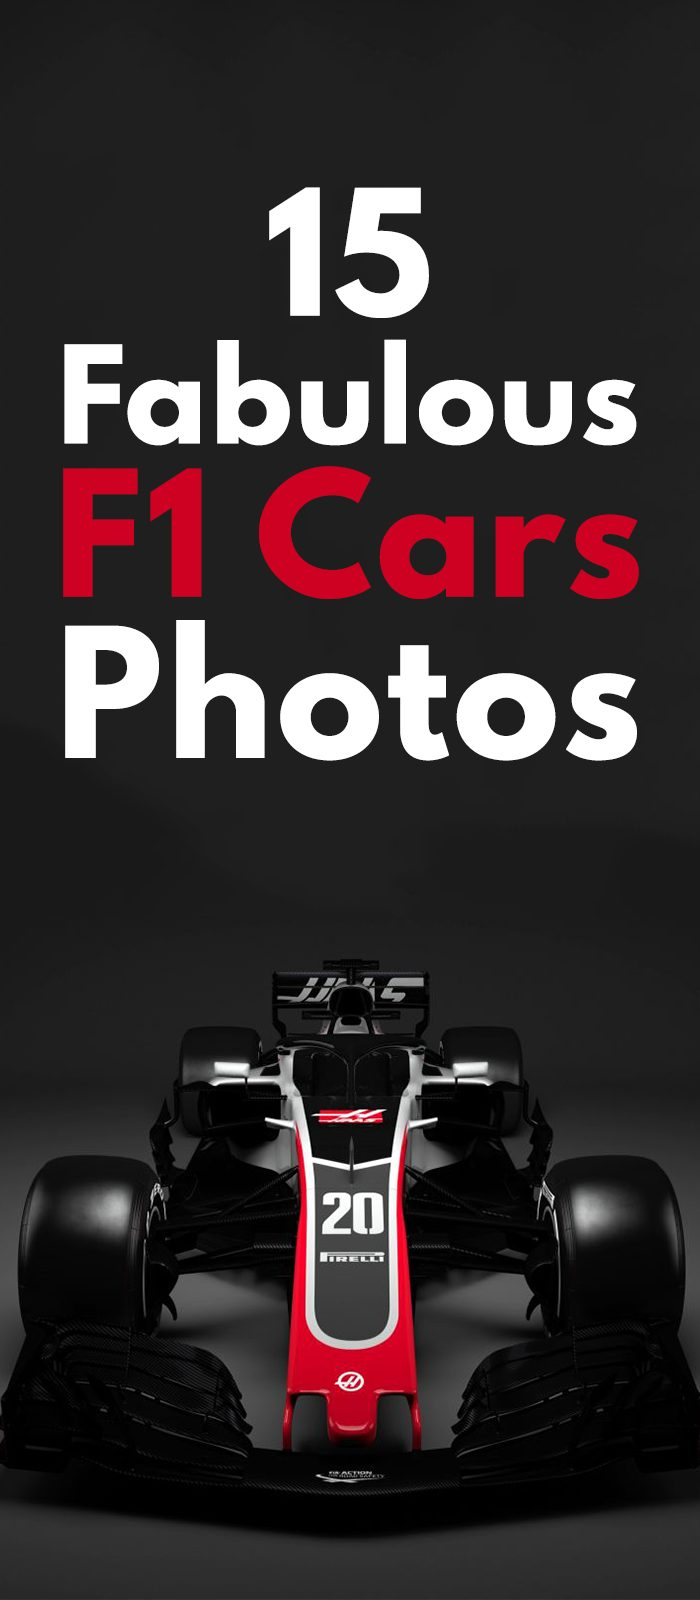 15 Fabulous F1 Cars Photos